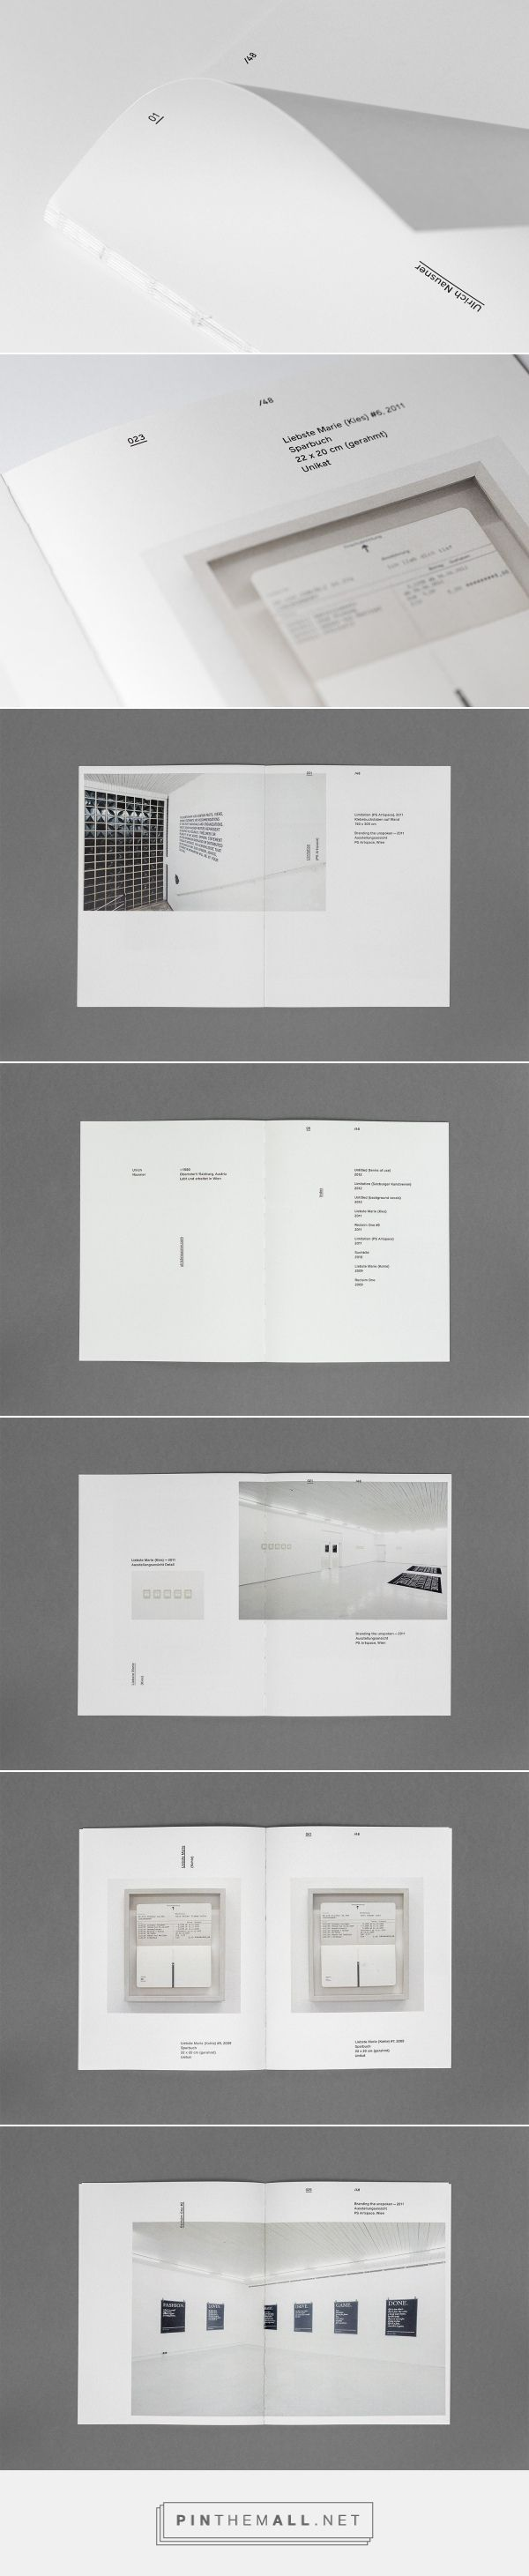 Minimalistic design layouts which would work well for a professional portfolio too.